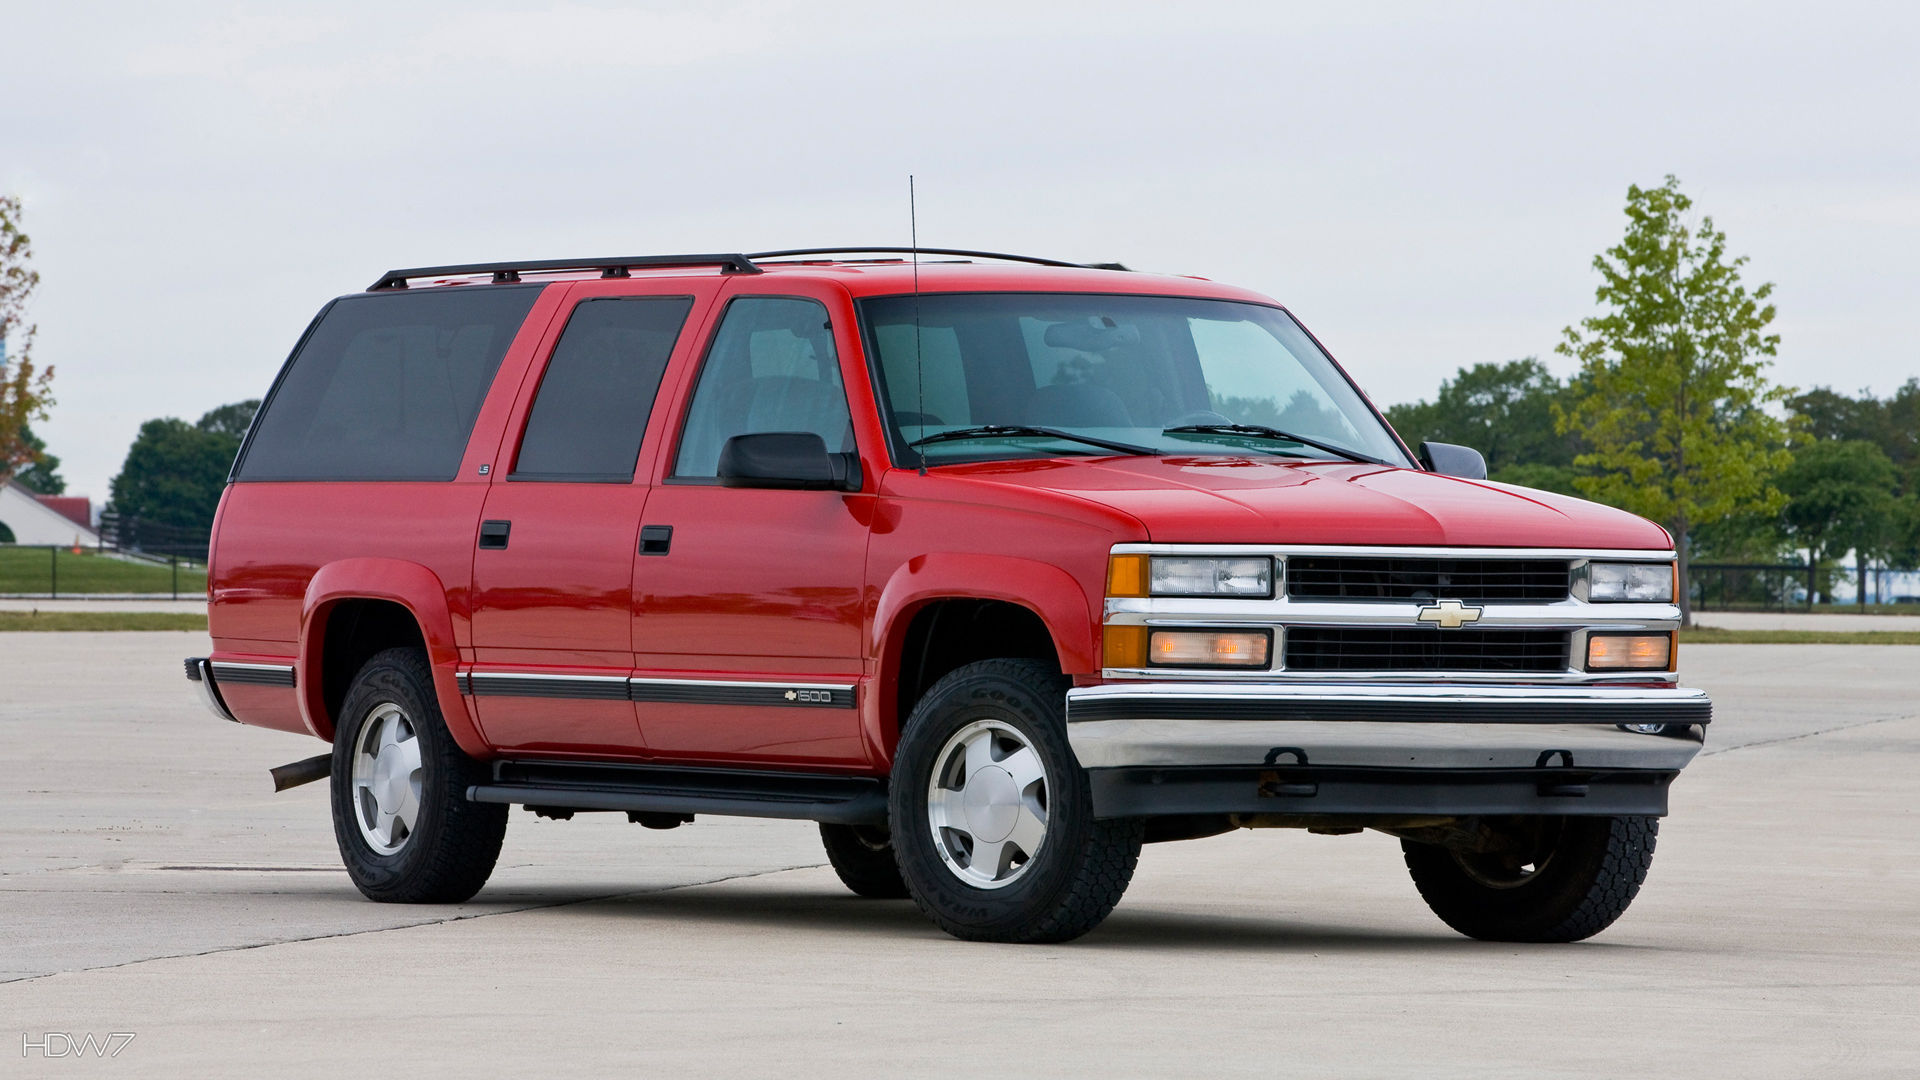 chevrolet suburban 1999 car hd wallpaper